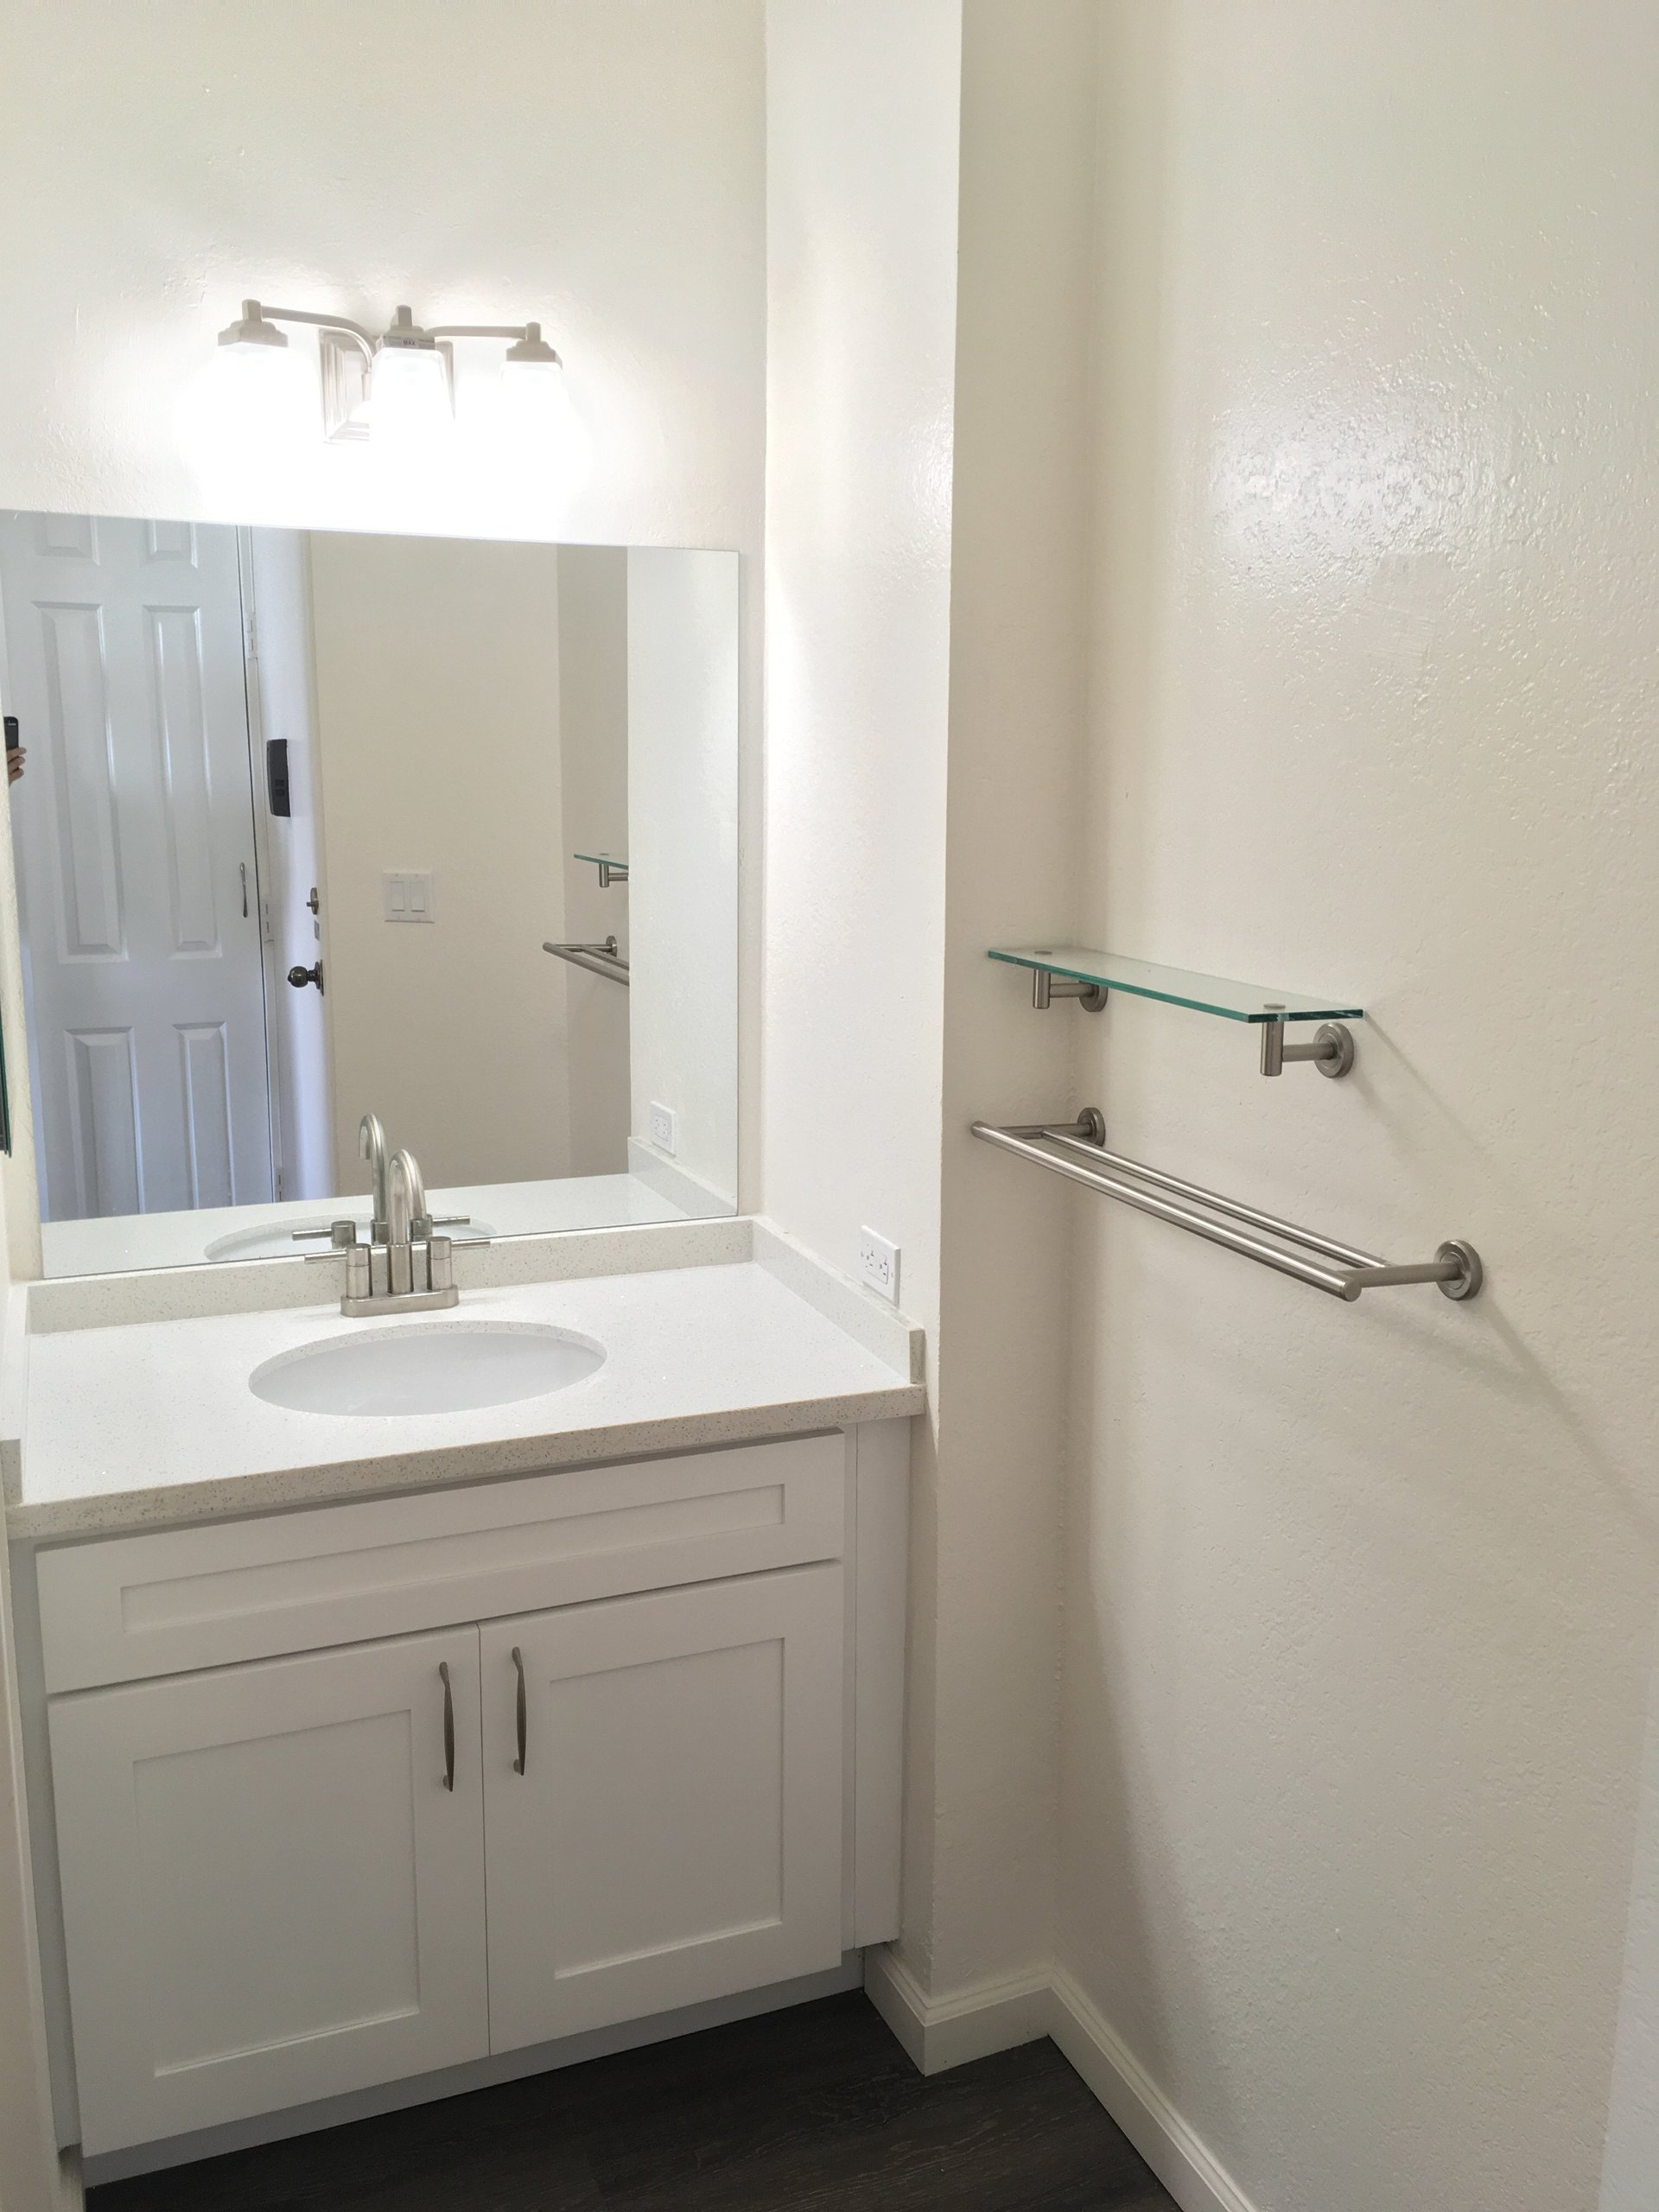 Factors To Consider Before Beginning Your Bathroom Remodeling - Bathroom remodeling honolulu